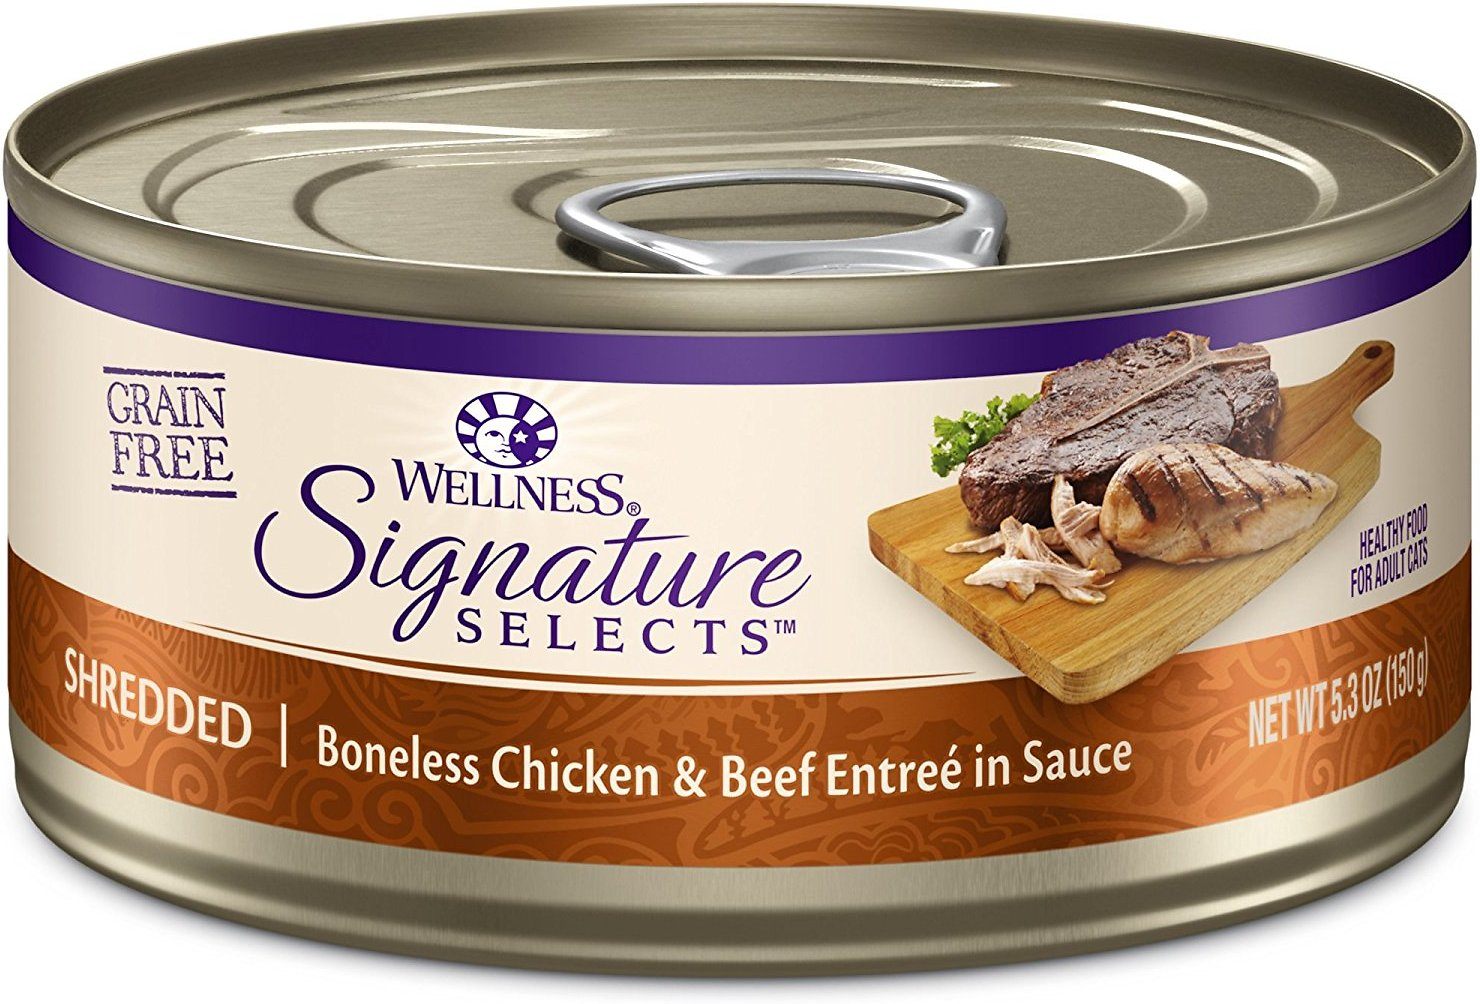 Wellness CORE Signature Selects Shredded Boneless Chicken & Beef Entree in Sauce Grain-Free Canned Cat Food, 2.8-oz